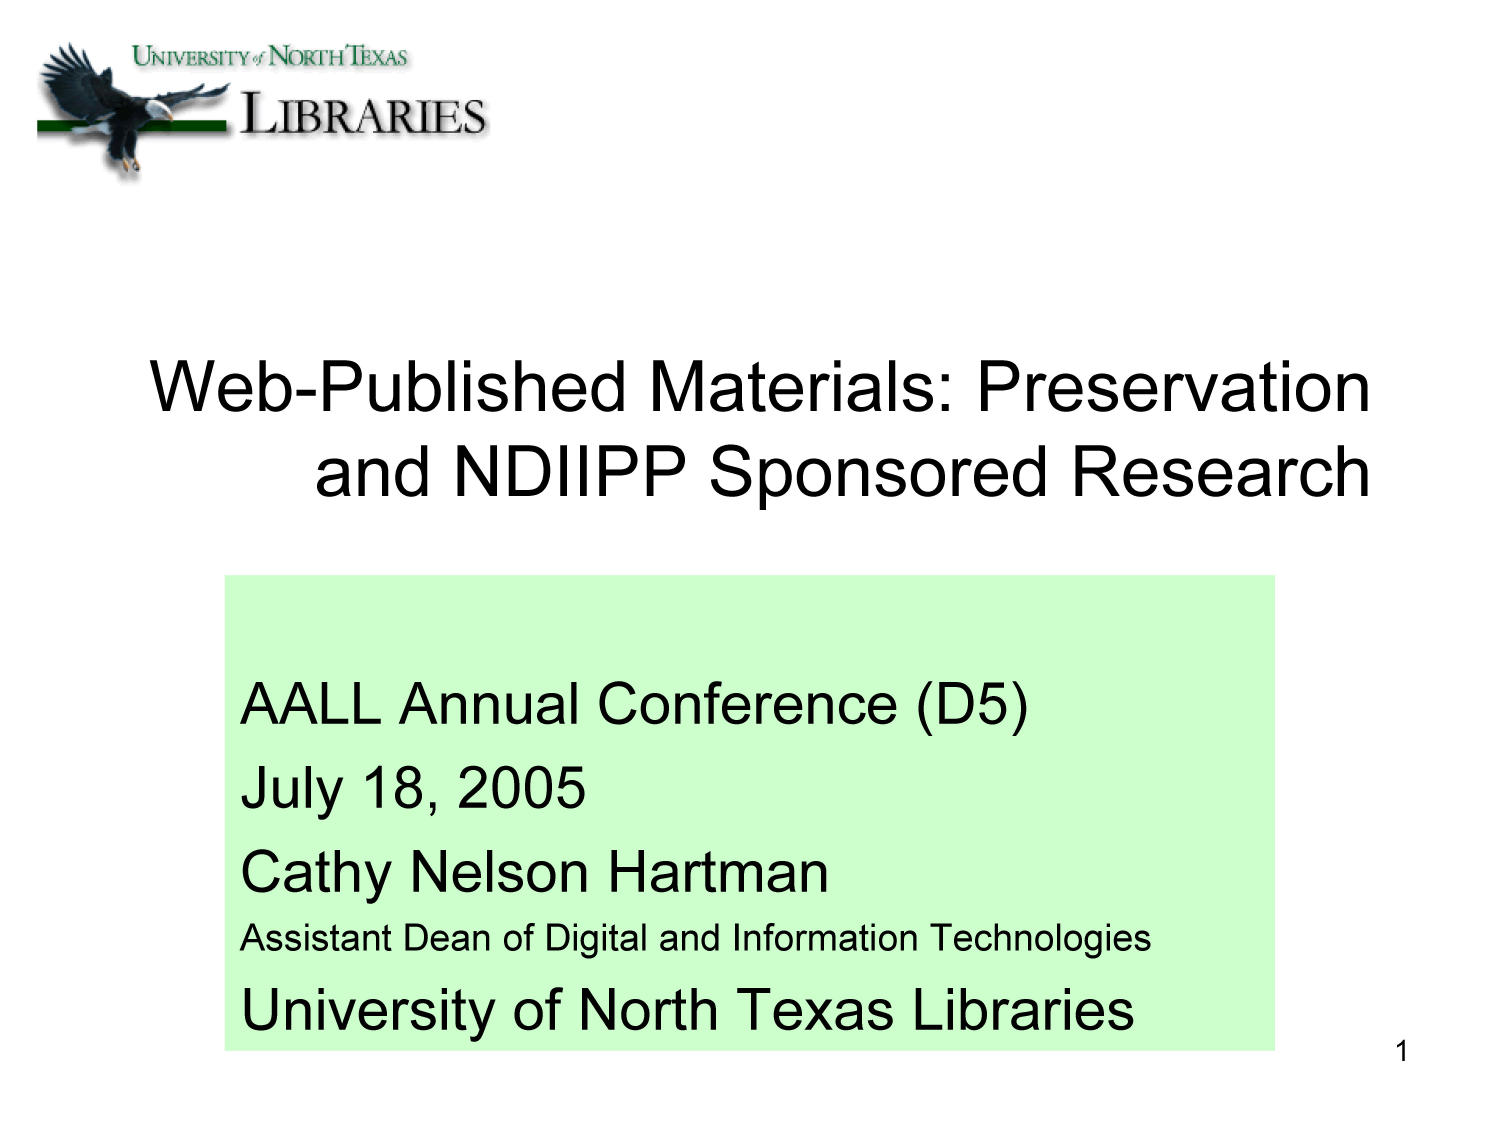 Web-Published Materials: Preservation and NDIIPP Sponsored Research                                                                                                      [Sequence #]: 1 of 8